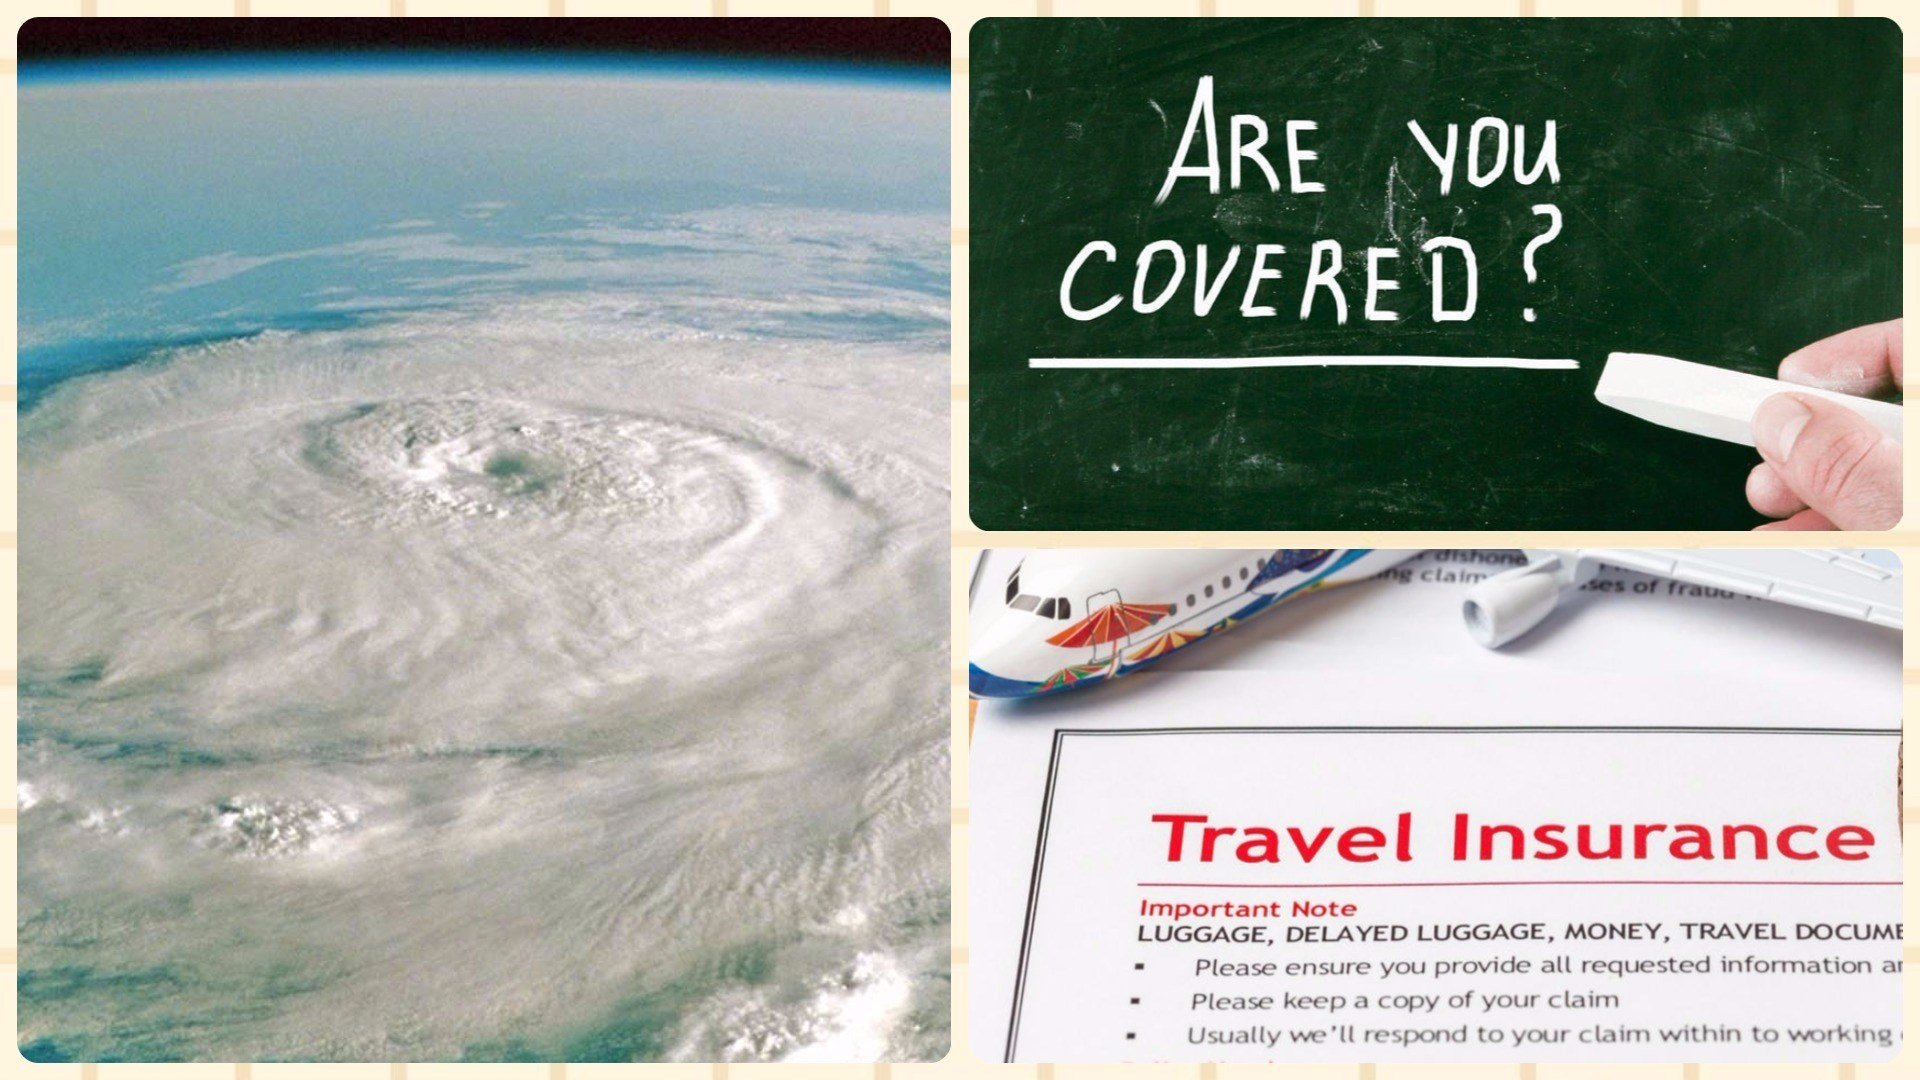 Hurricane insurance travel